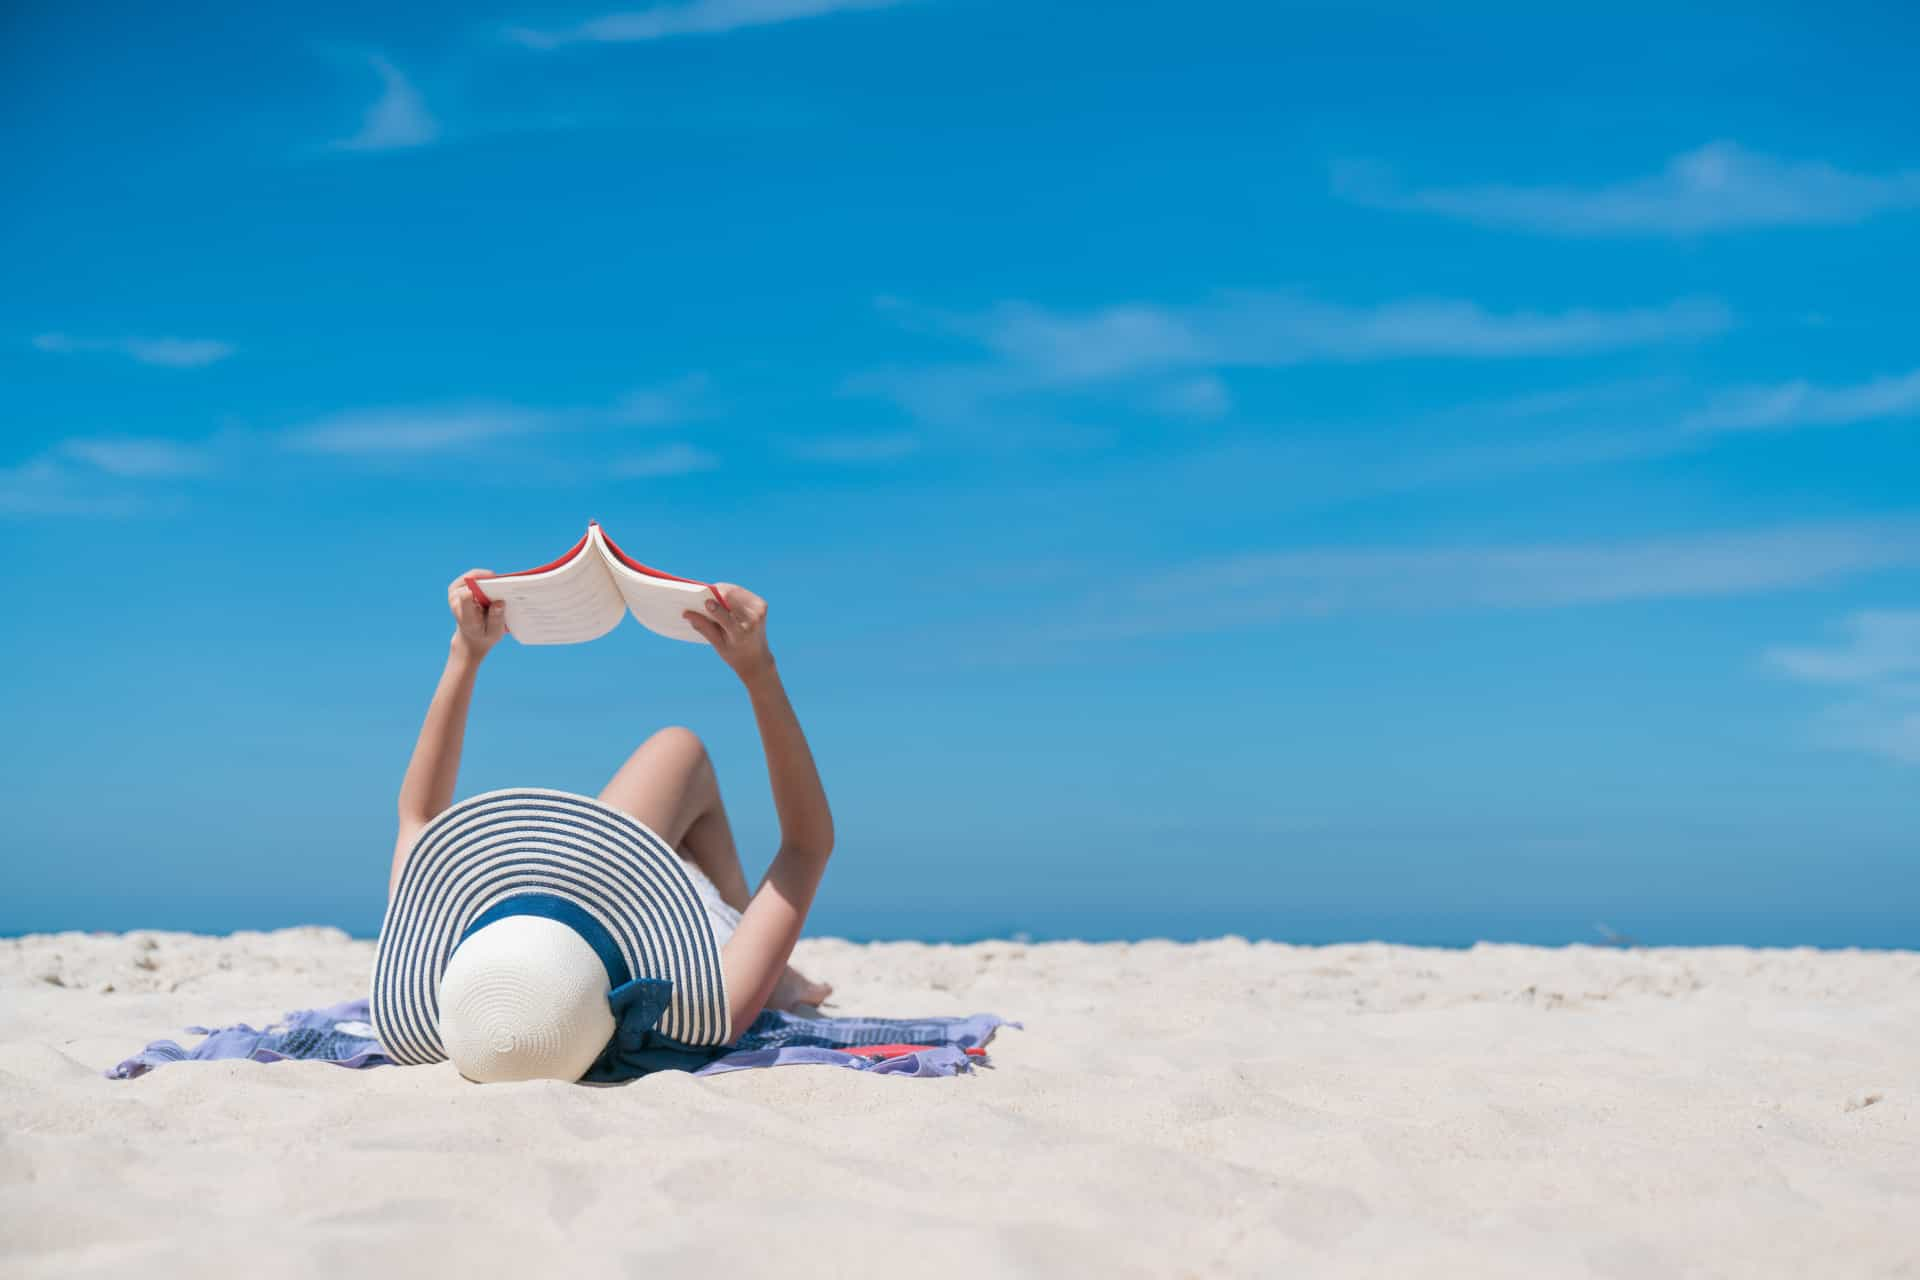 How to beat boredom at the beach